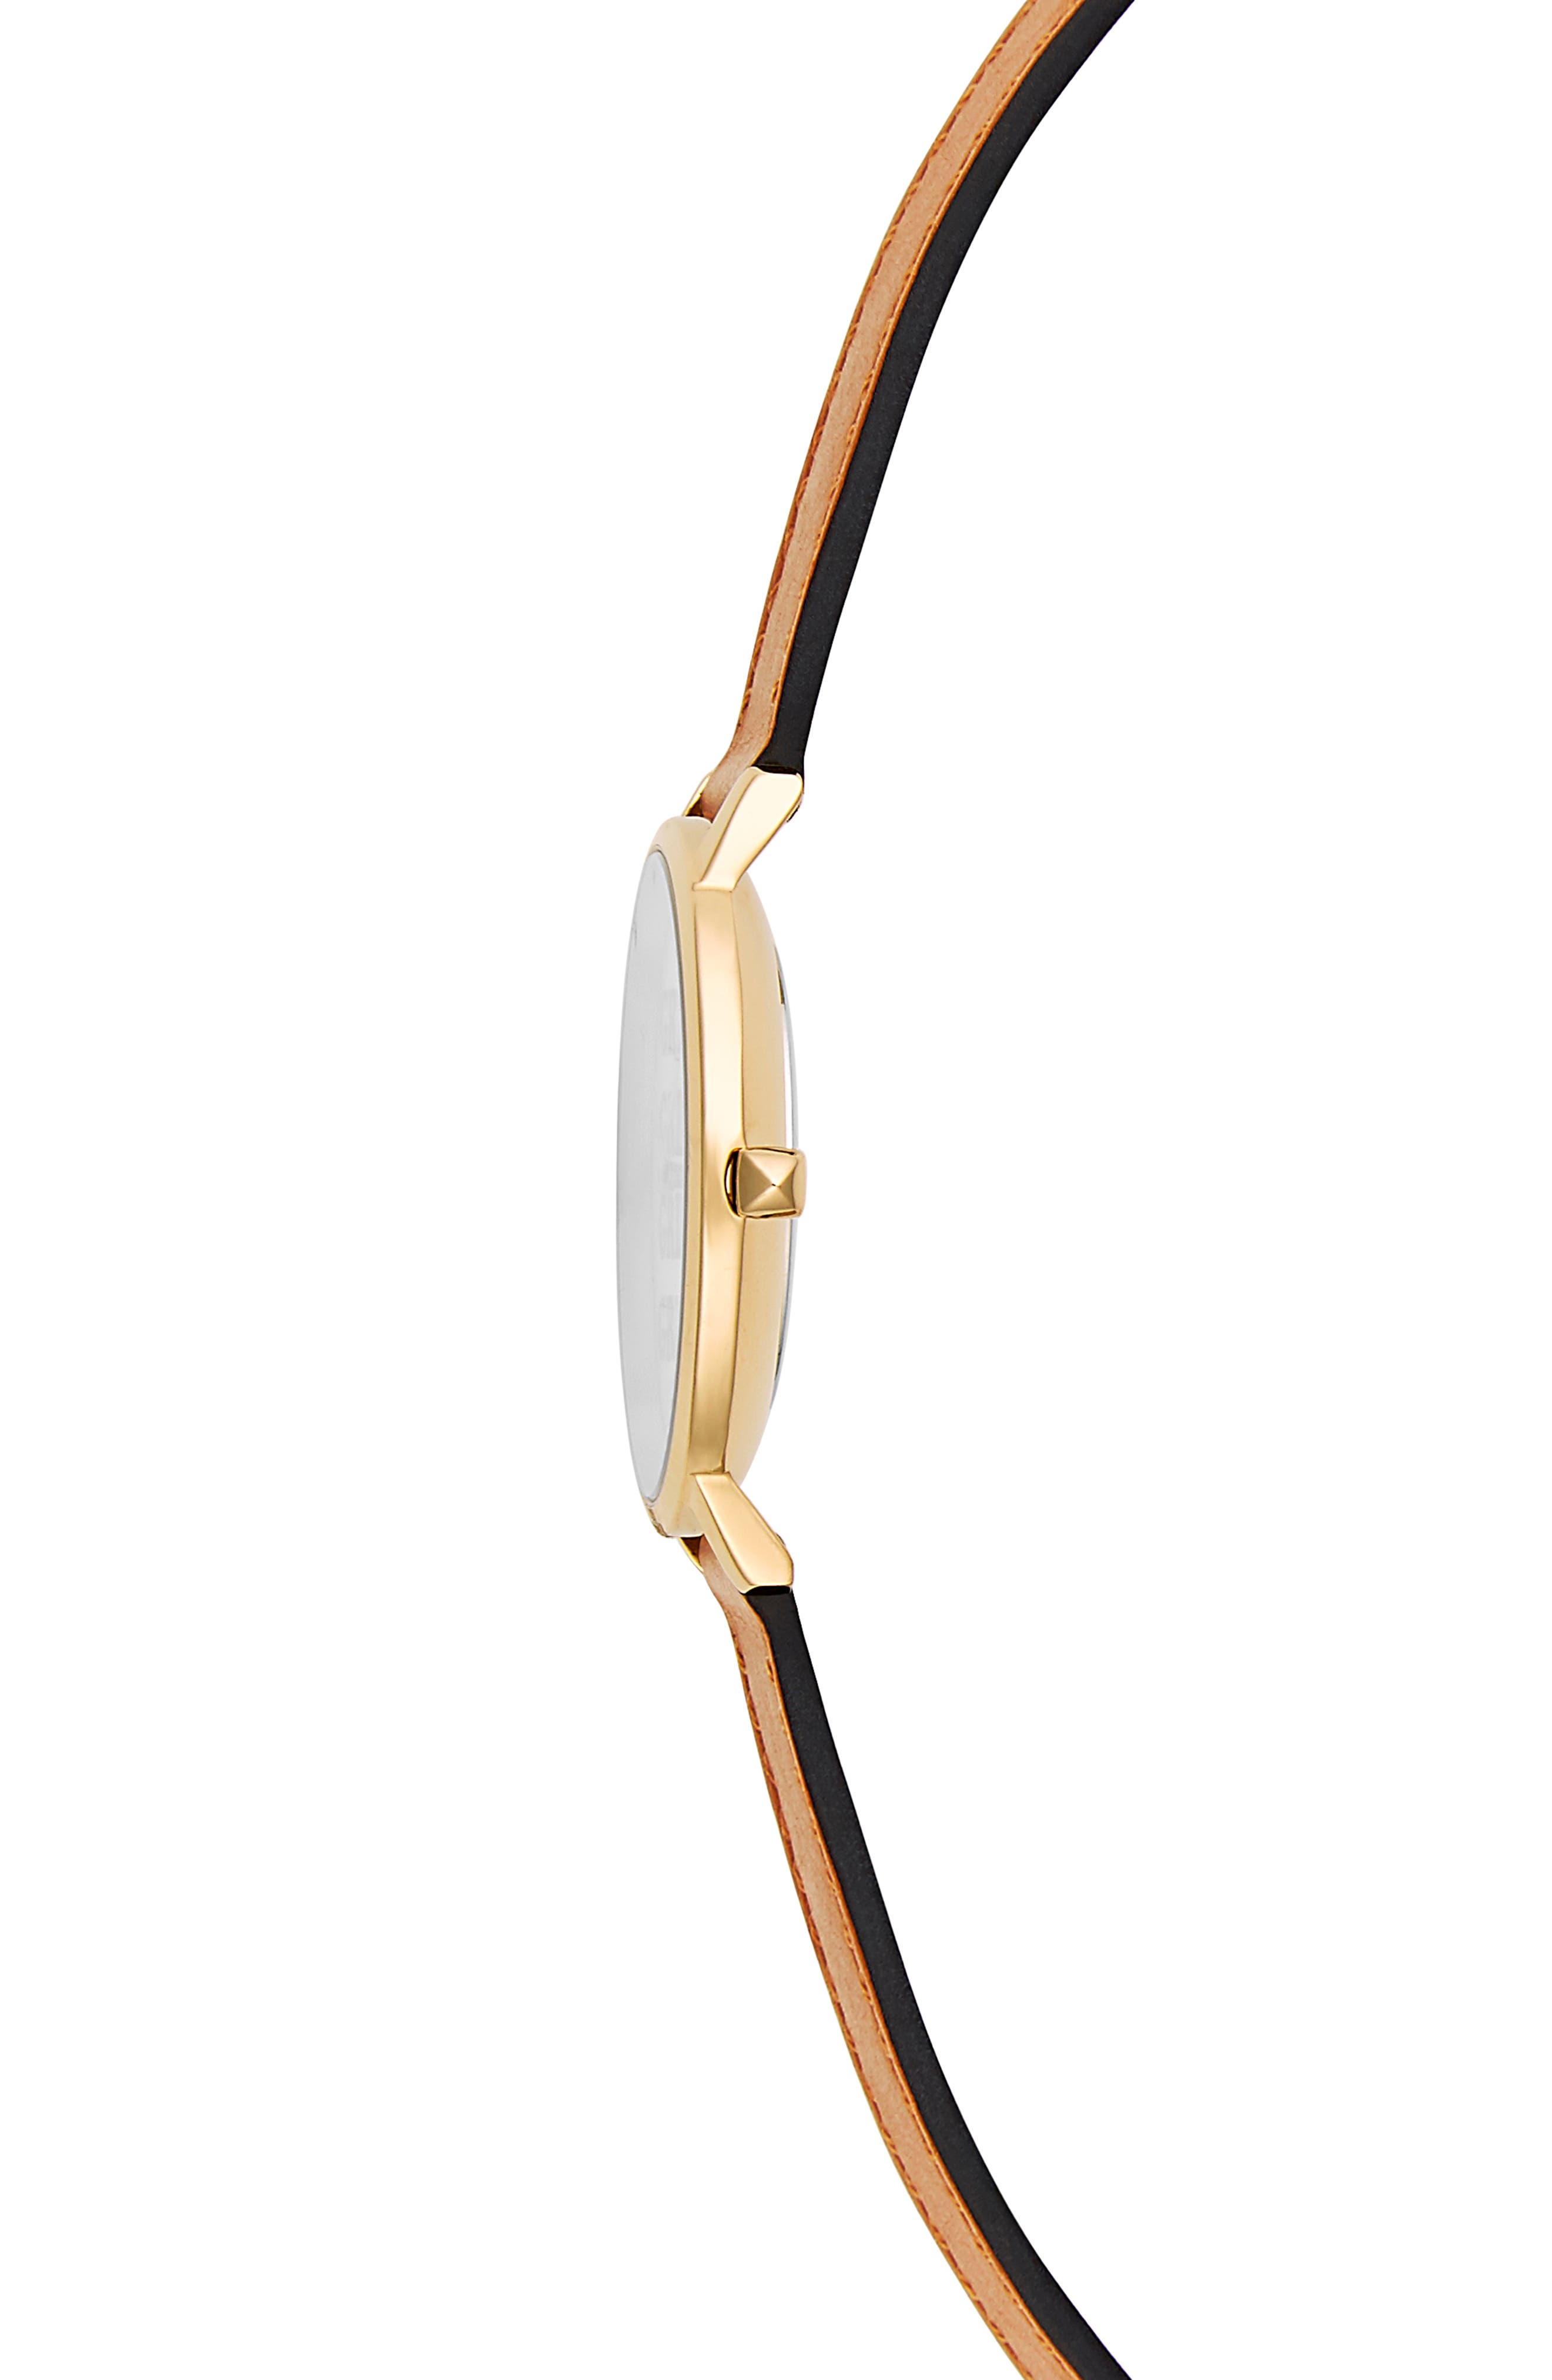 Rebeca Minkoff Major GRL PWR Leather Strap Watch, 35mm,                             Alternate thumbnail 3, color,                             ALMOND/ SILVER/ GOLD